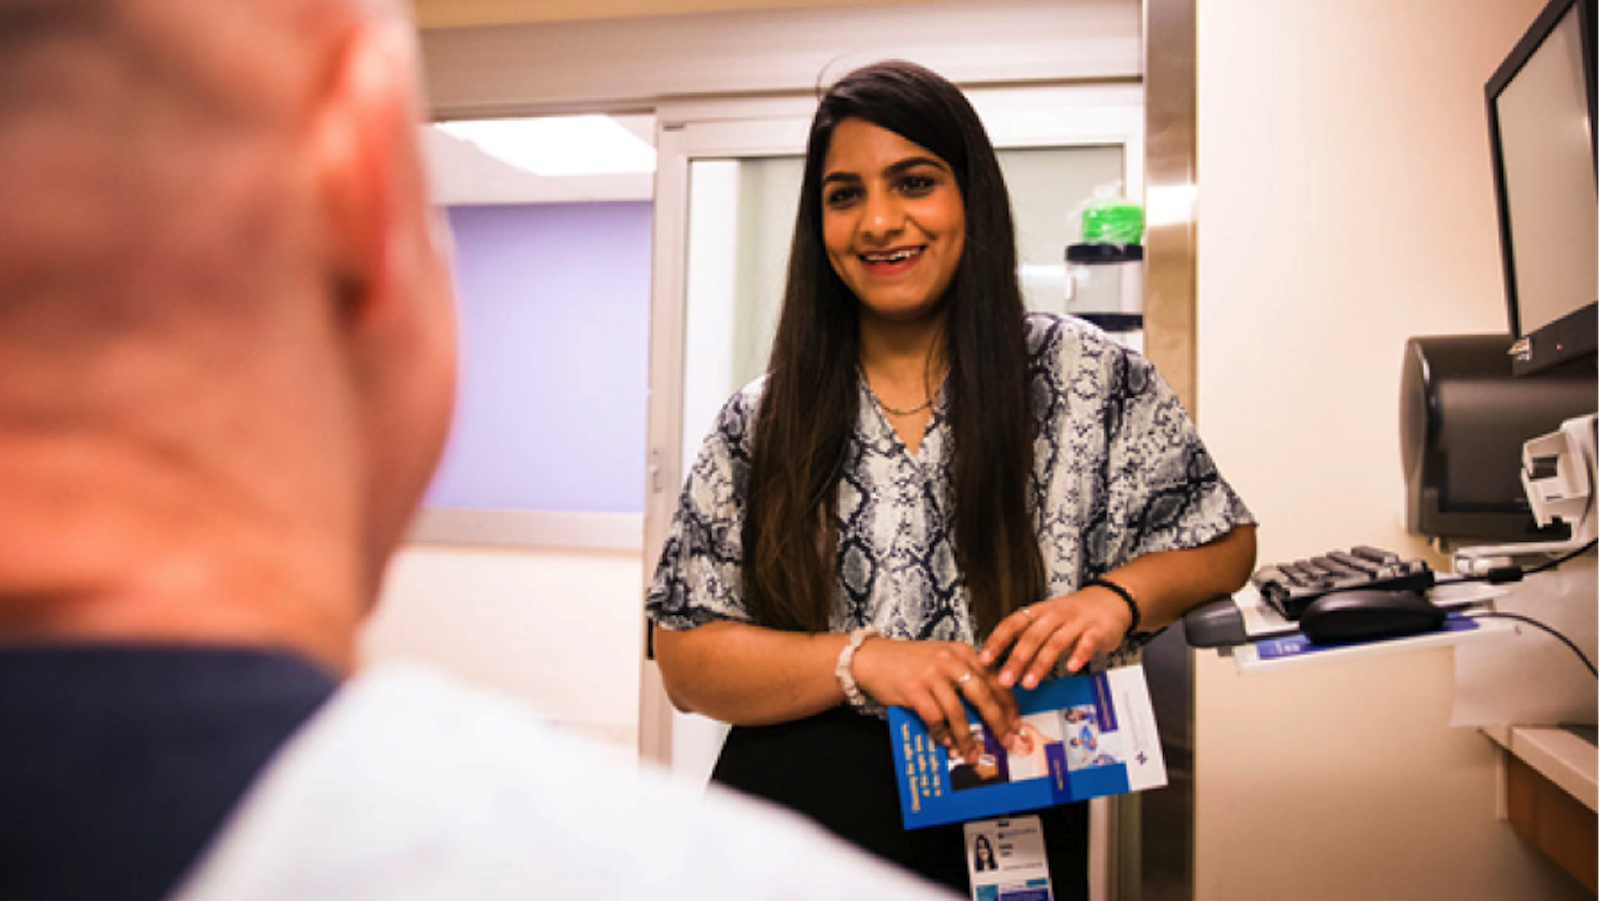 University of Texas at Dallas student Sana Iqbal participated in Baylor Scott & White Health's Community Advocates Program, which connects hospital patients from underserved communities with much-needed social services.